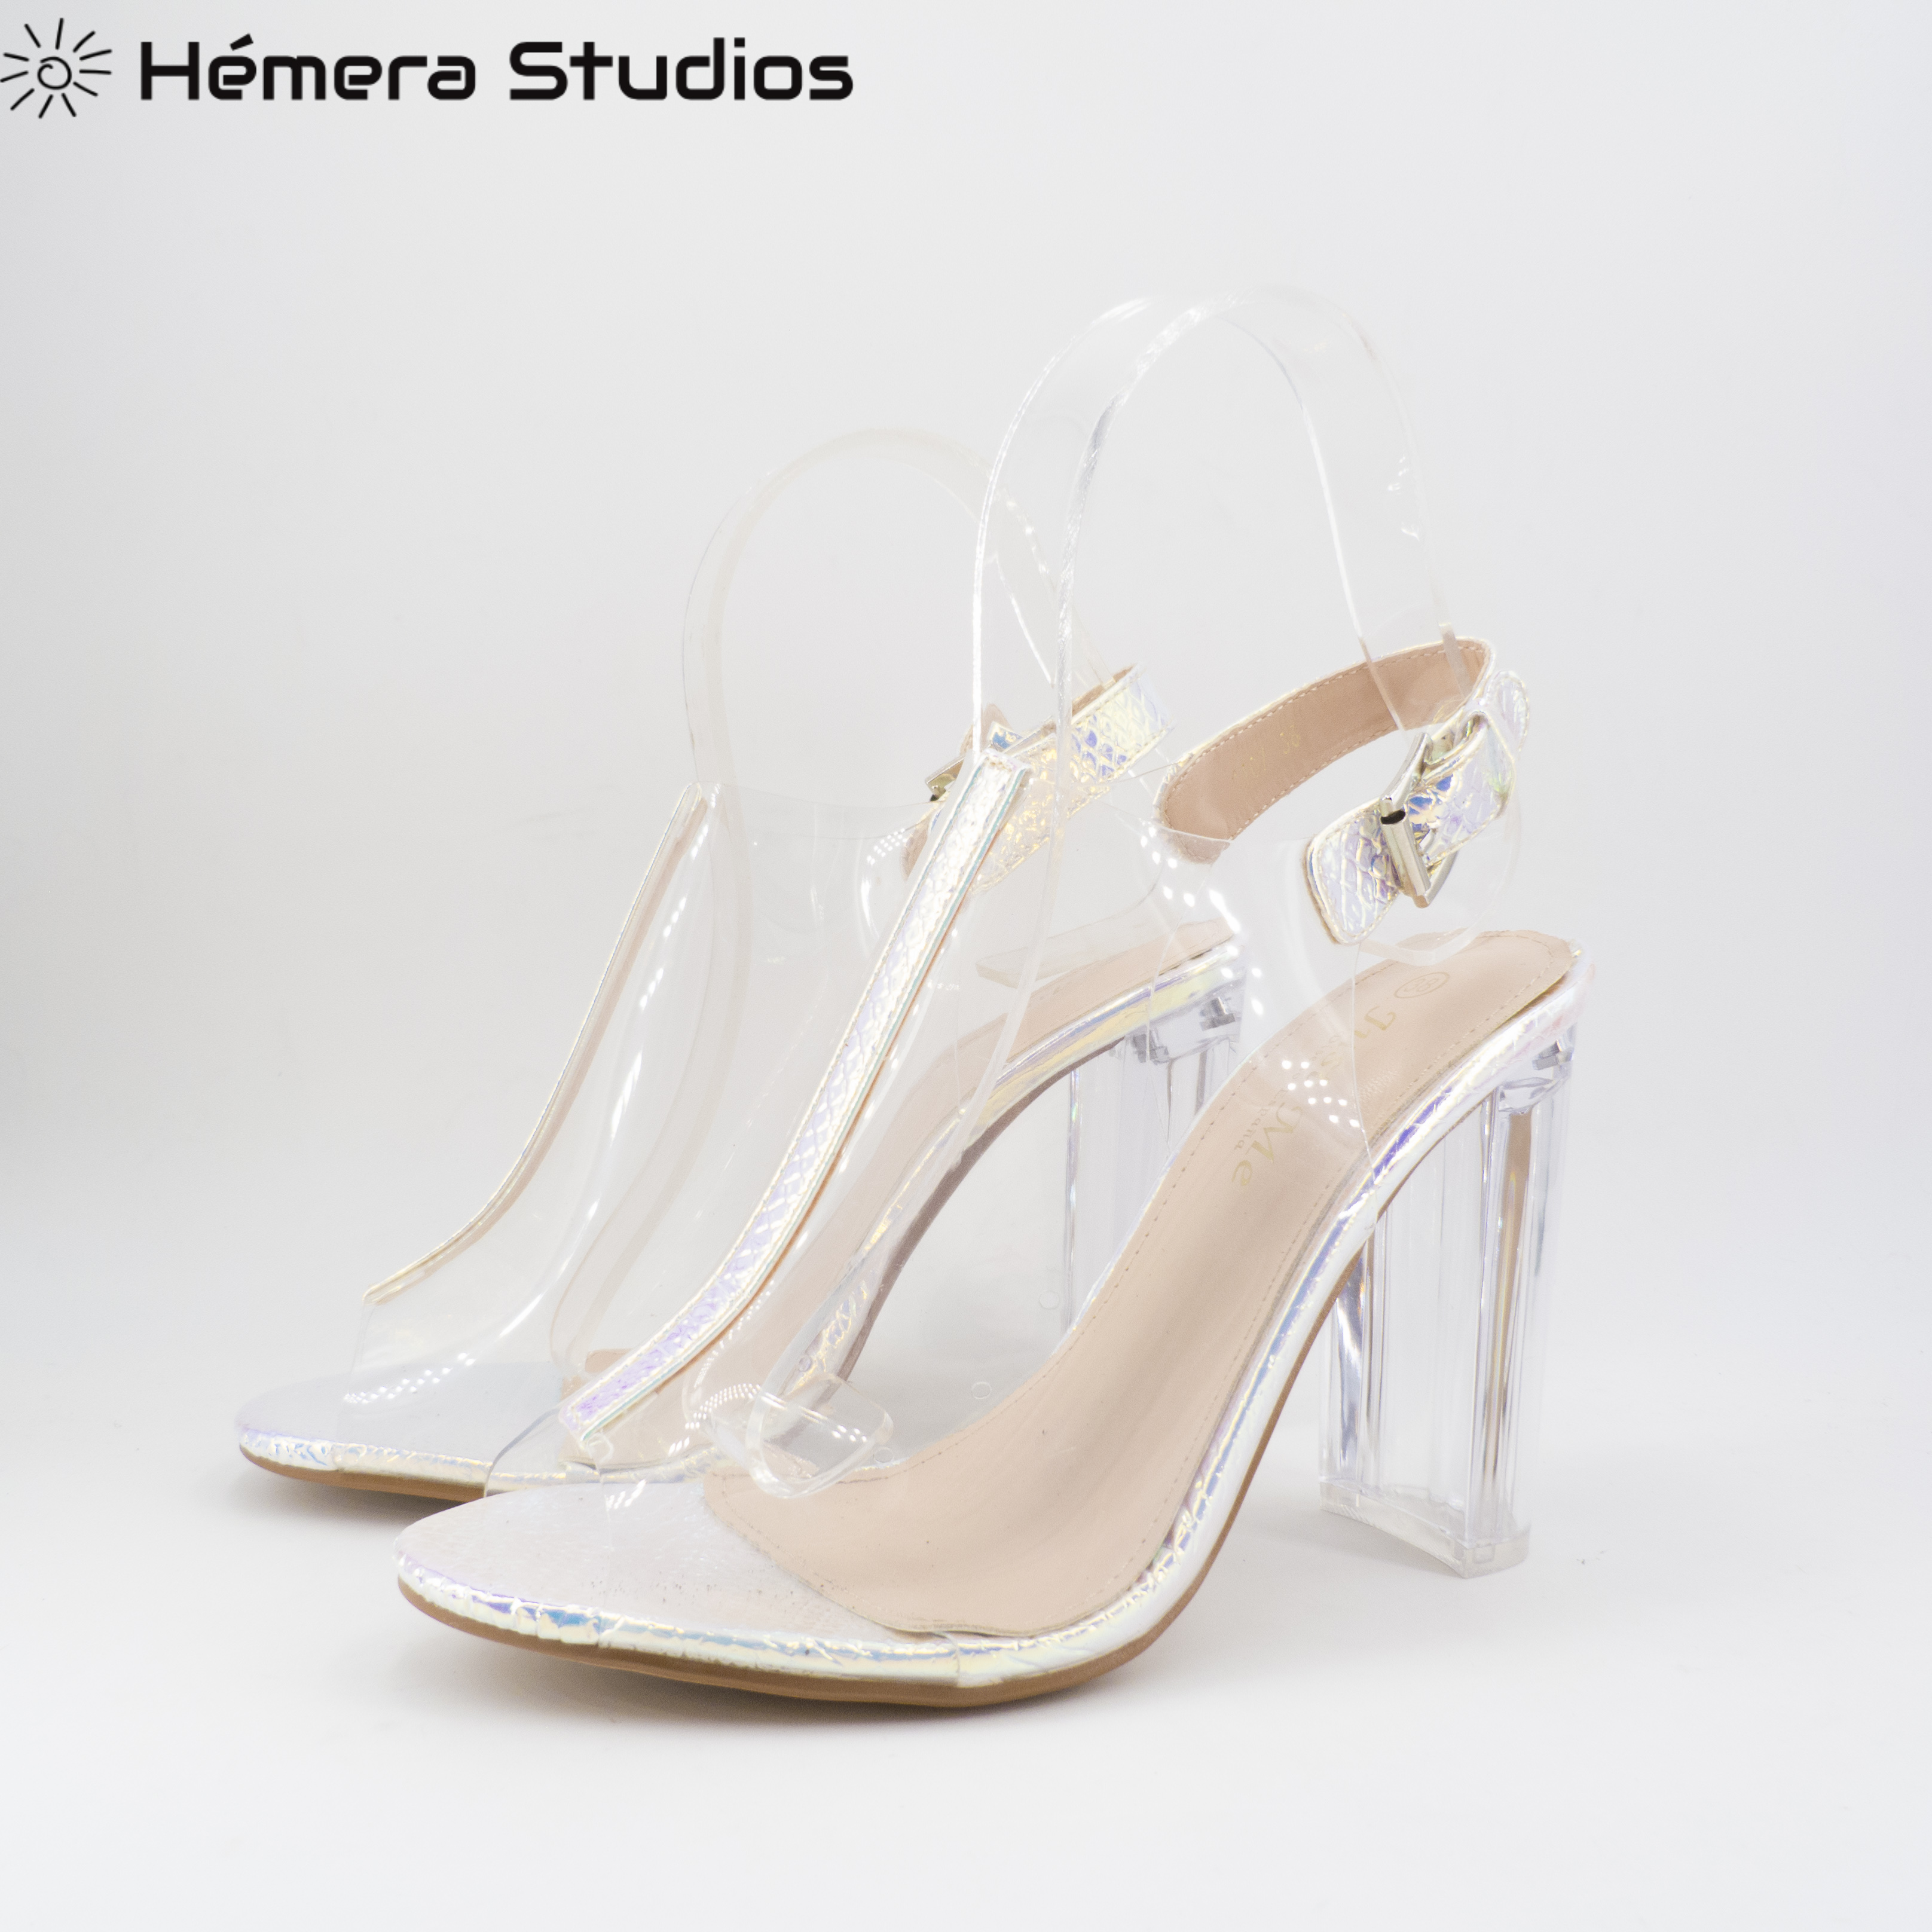 WOMEN'S SHOES HEEL SANDALS HIGH CRUZ-TIED WITH SUMMER PLATFORM PINK CLEAR NEW COLLECTION